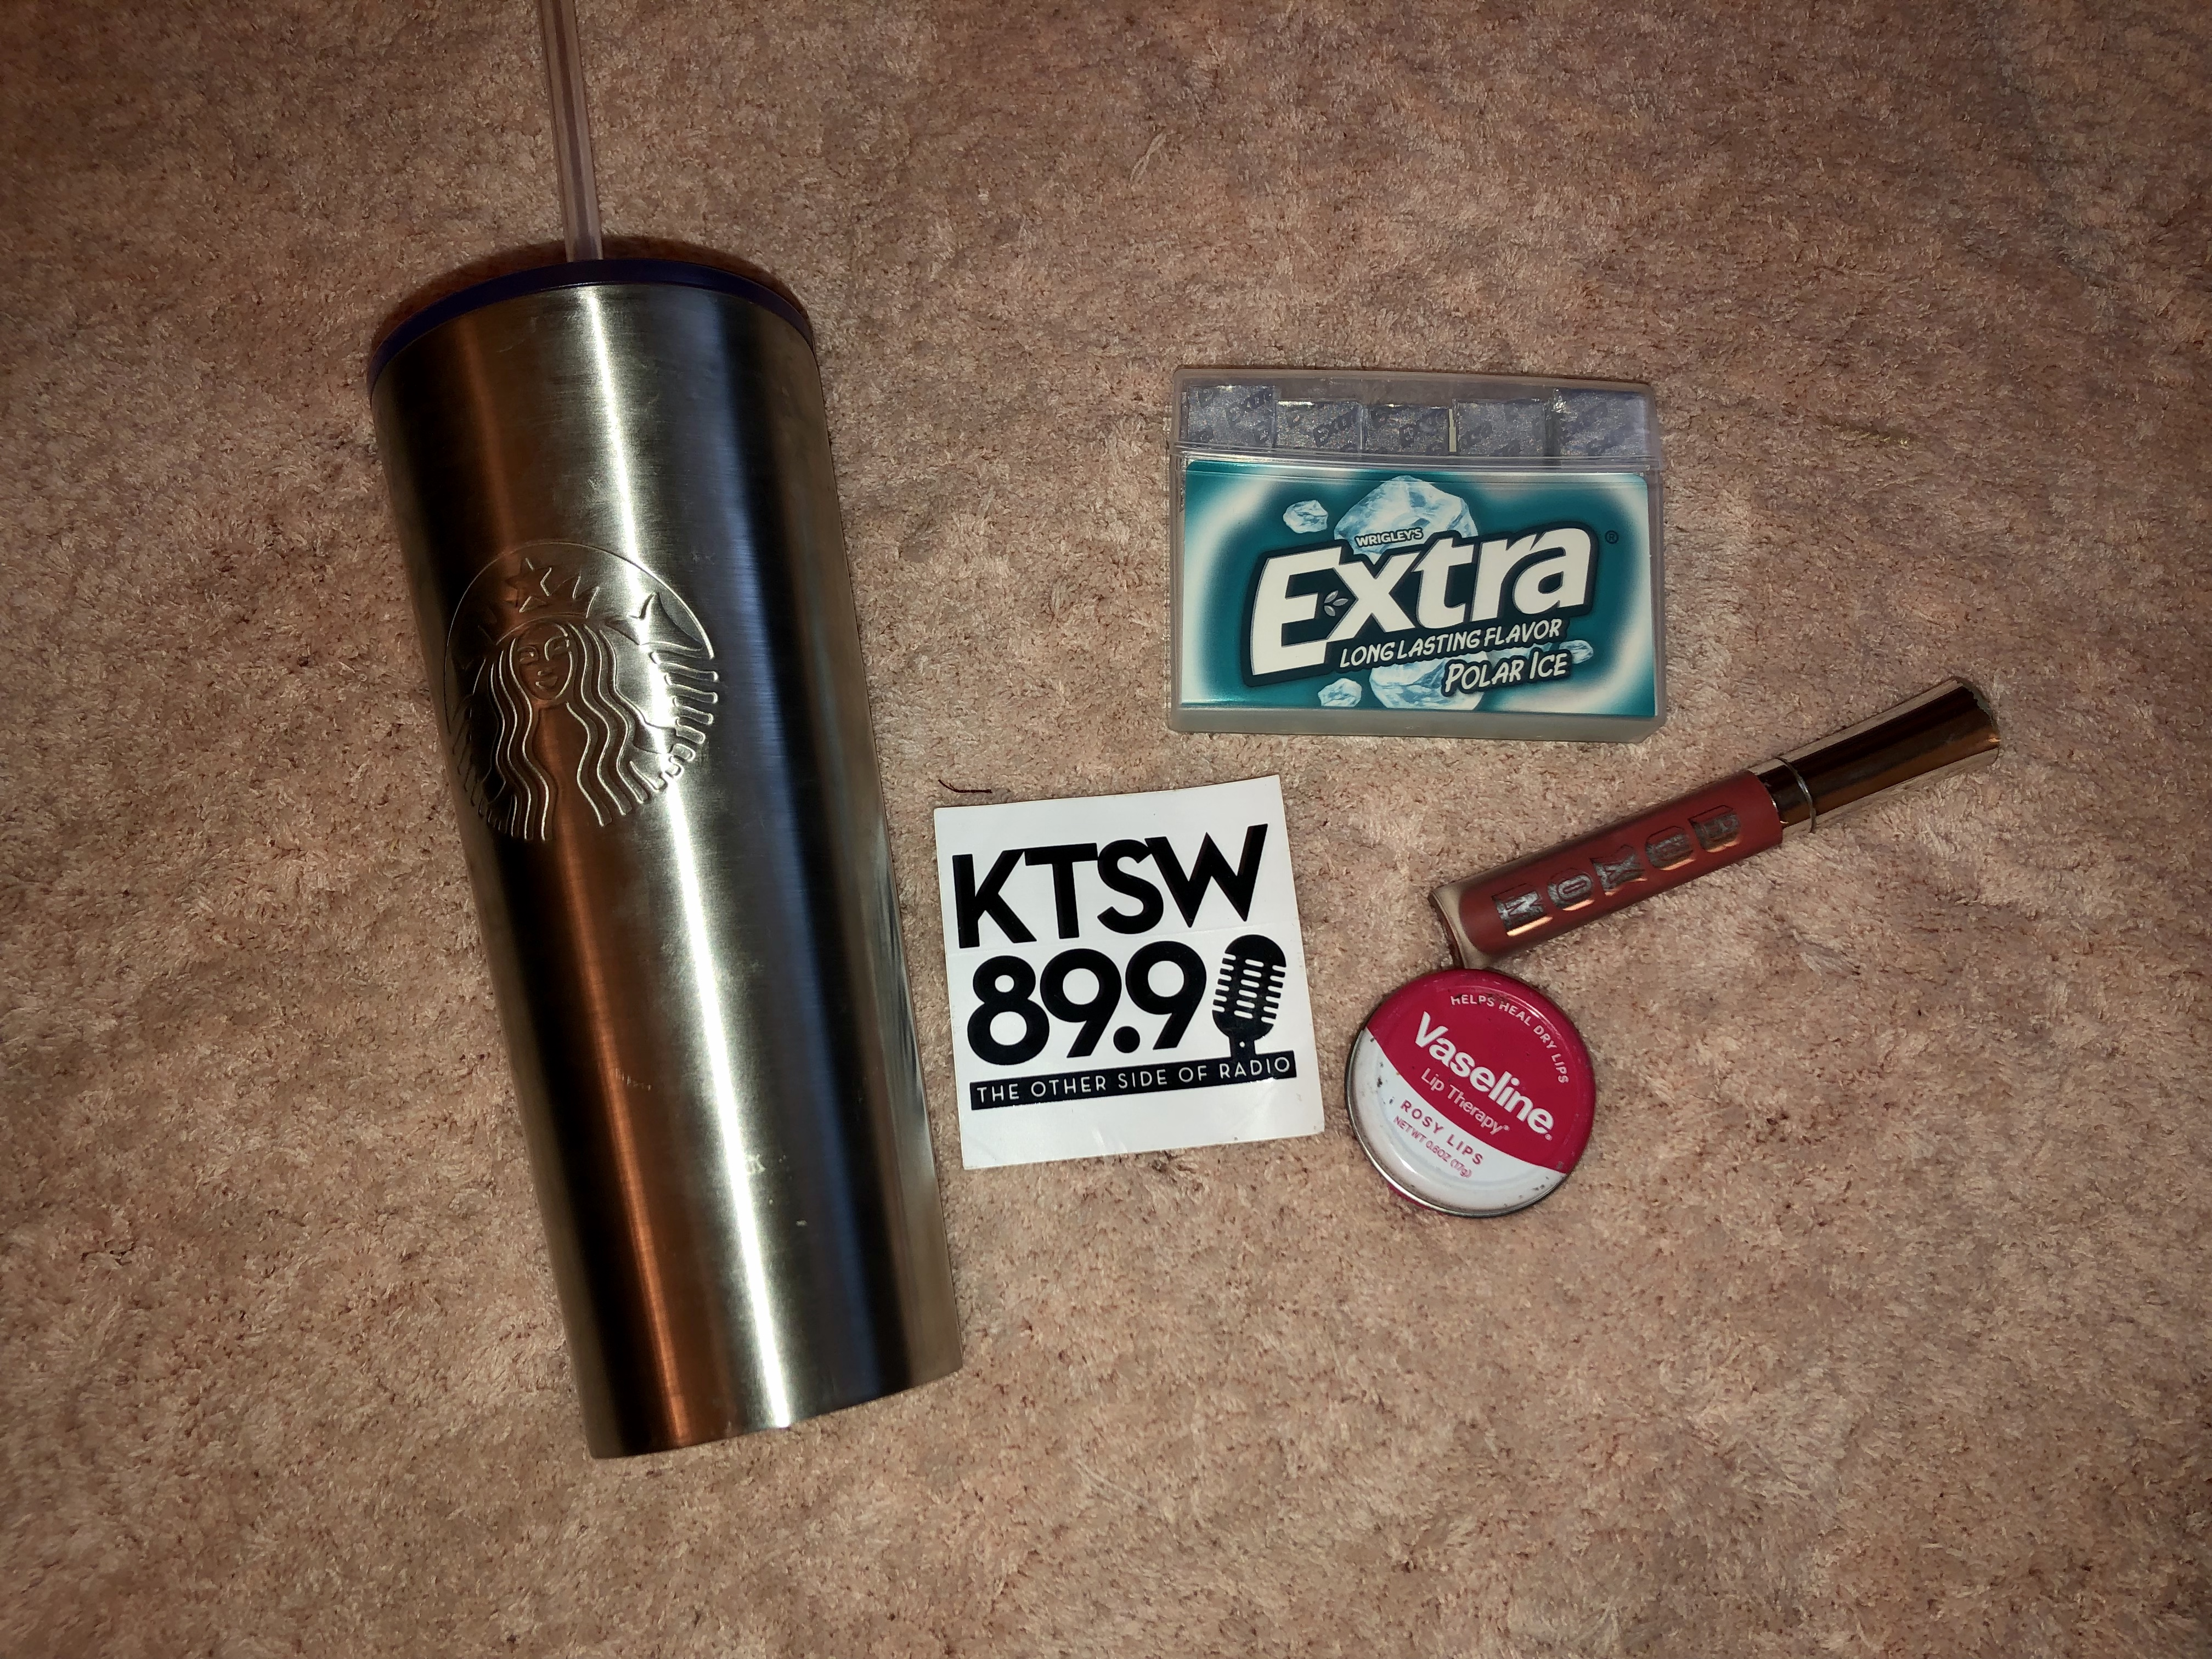 A silver Starbucks cup next to a white KTSW sticker, blue gum package, red lipgloss and pink chapstick